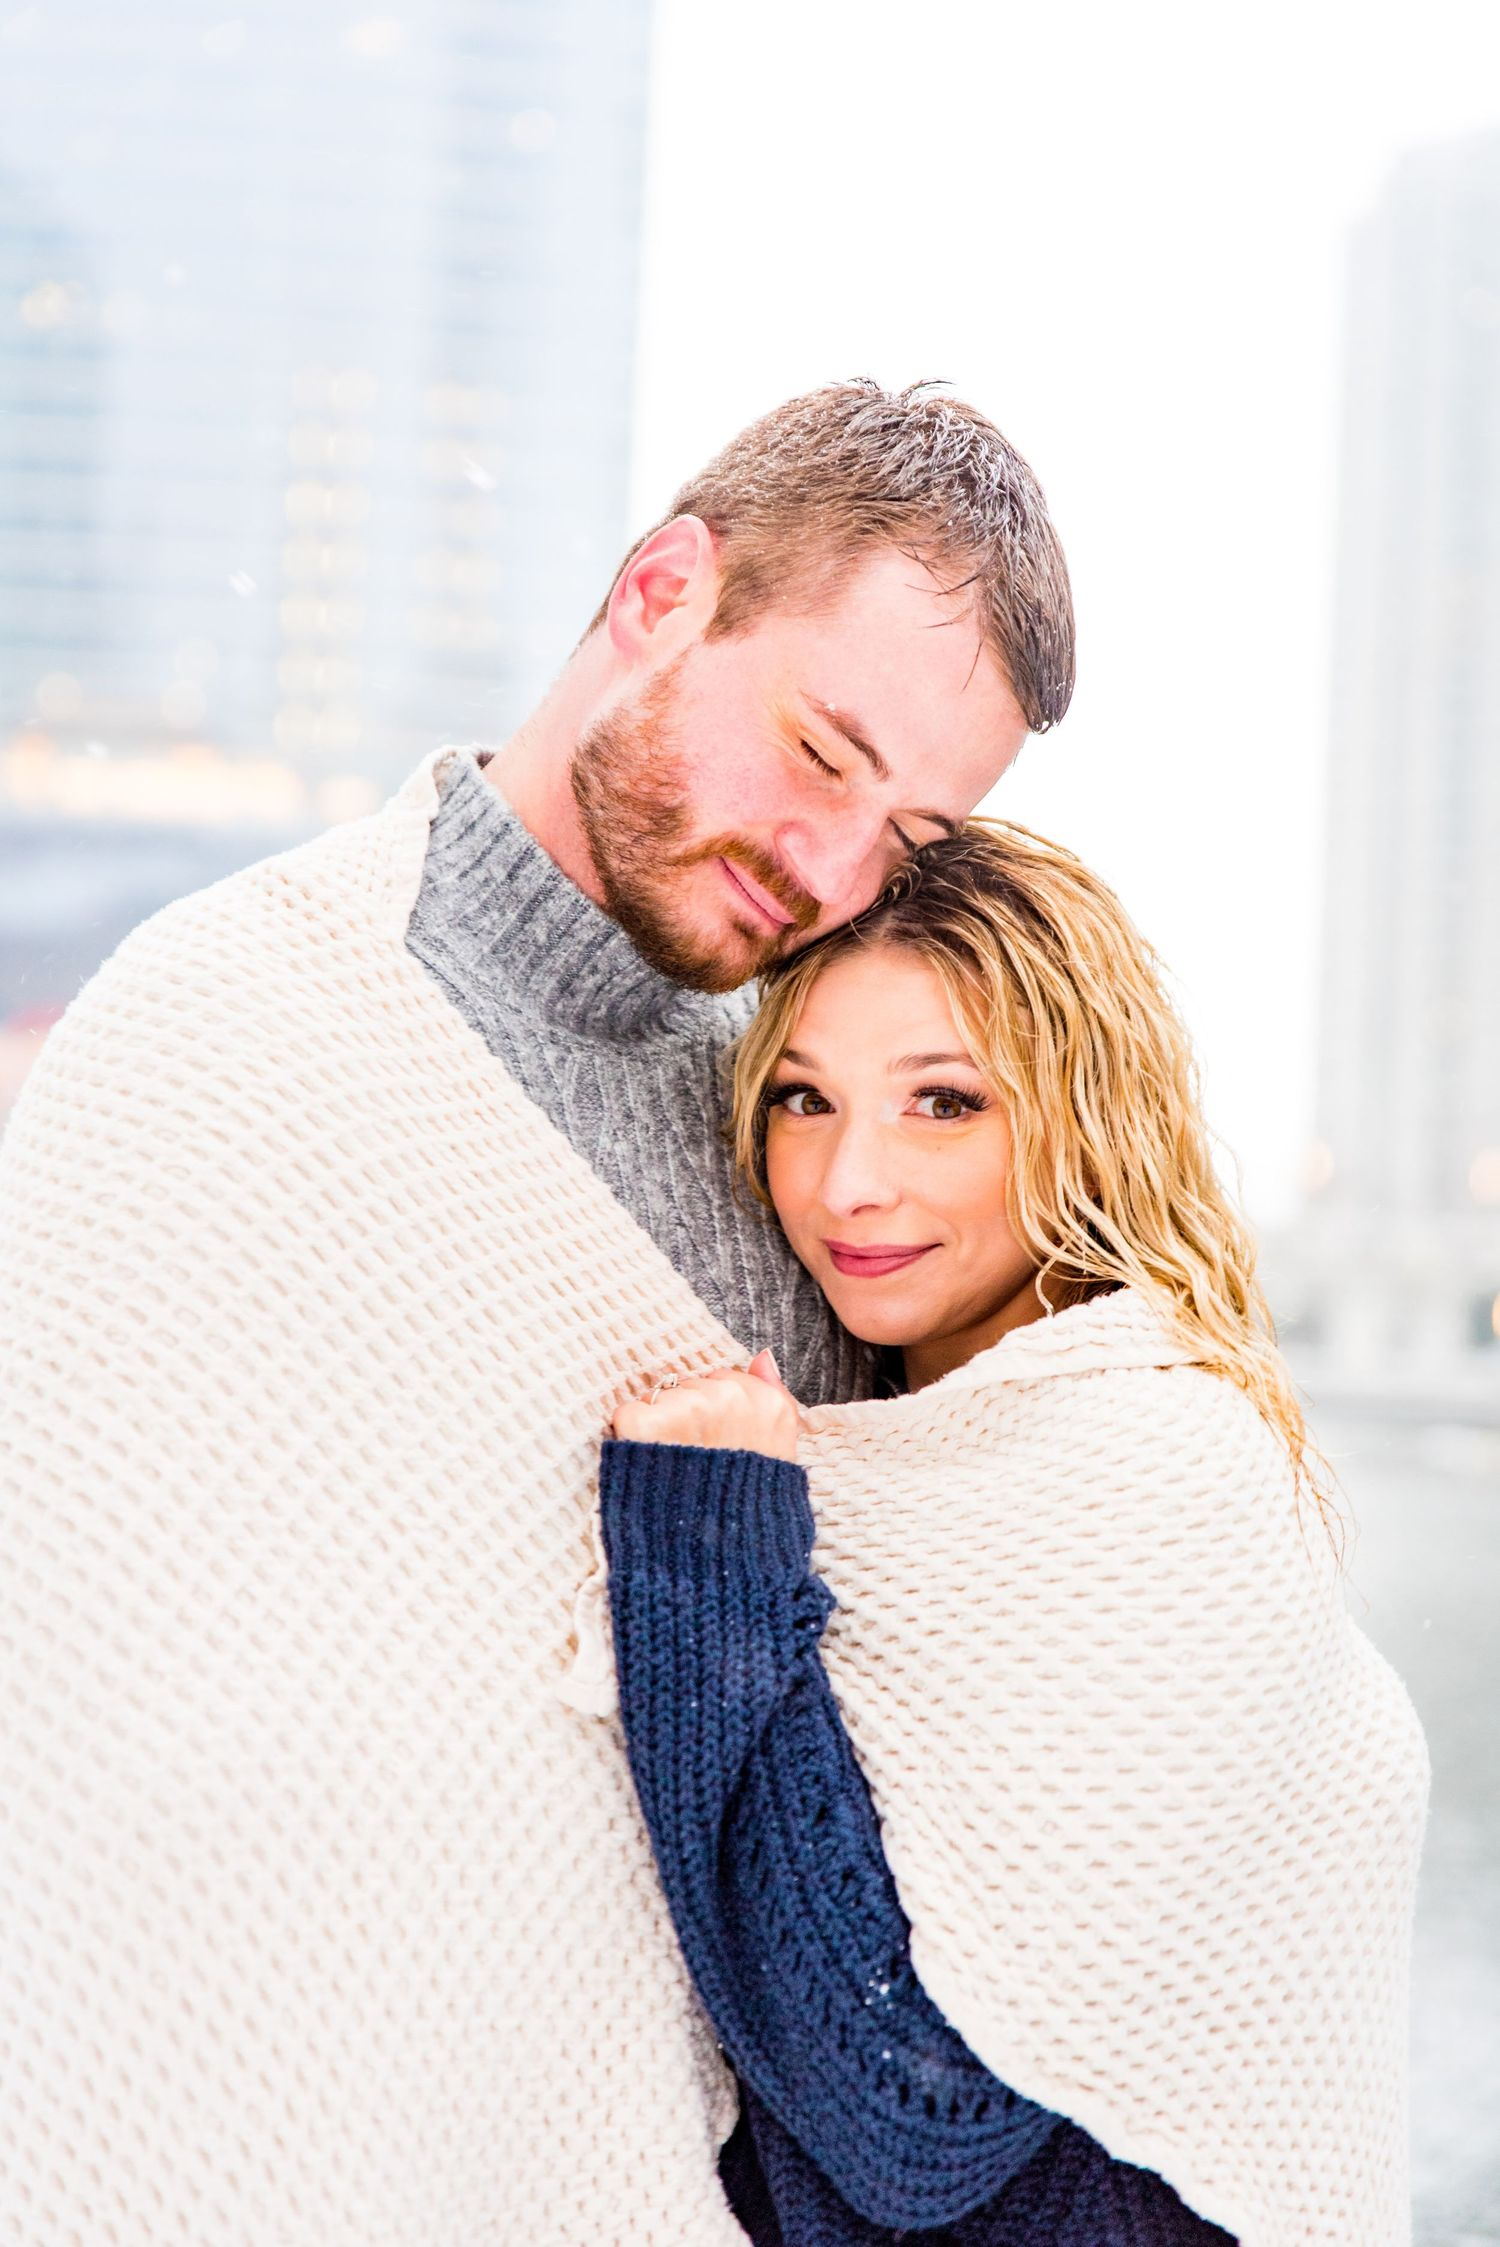 engaged couple wrapped in blanket for snowy Chicago engagement pictures at Wolf Point and Merchandise Mart